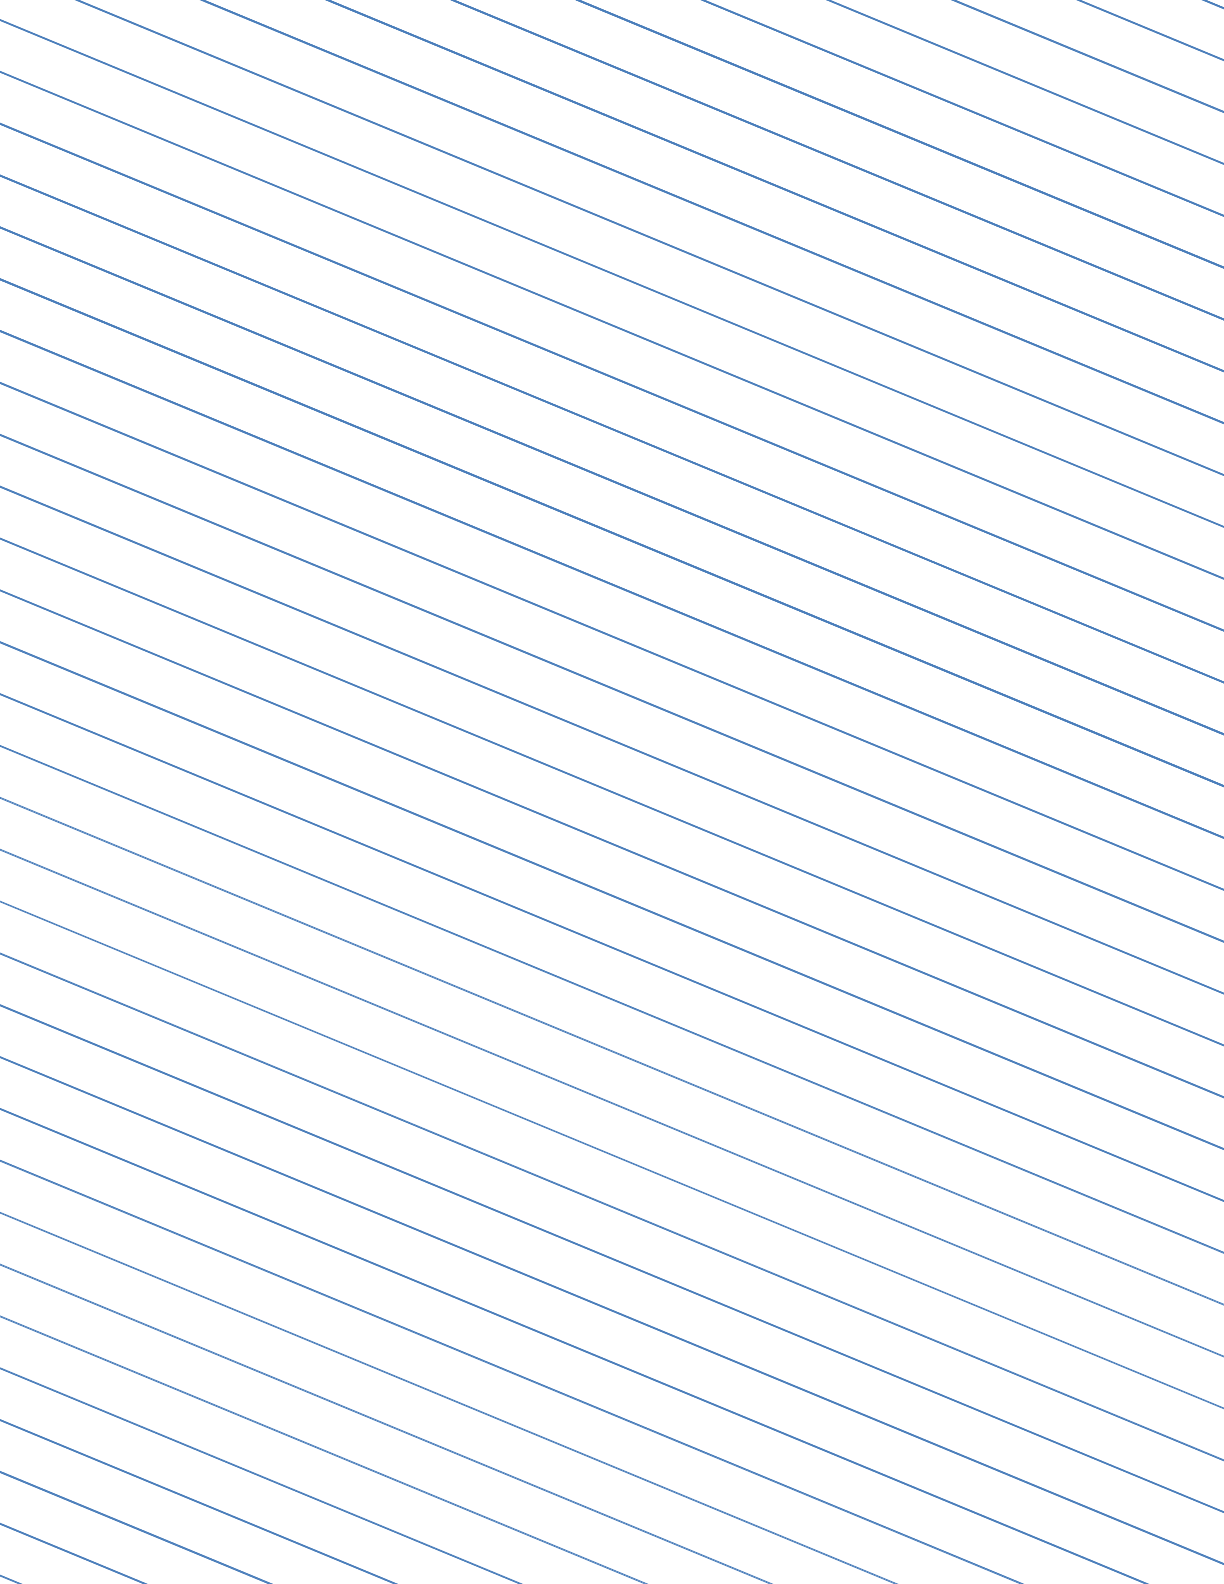 slant ruled paper with wide ruled left